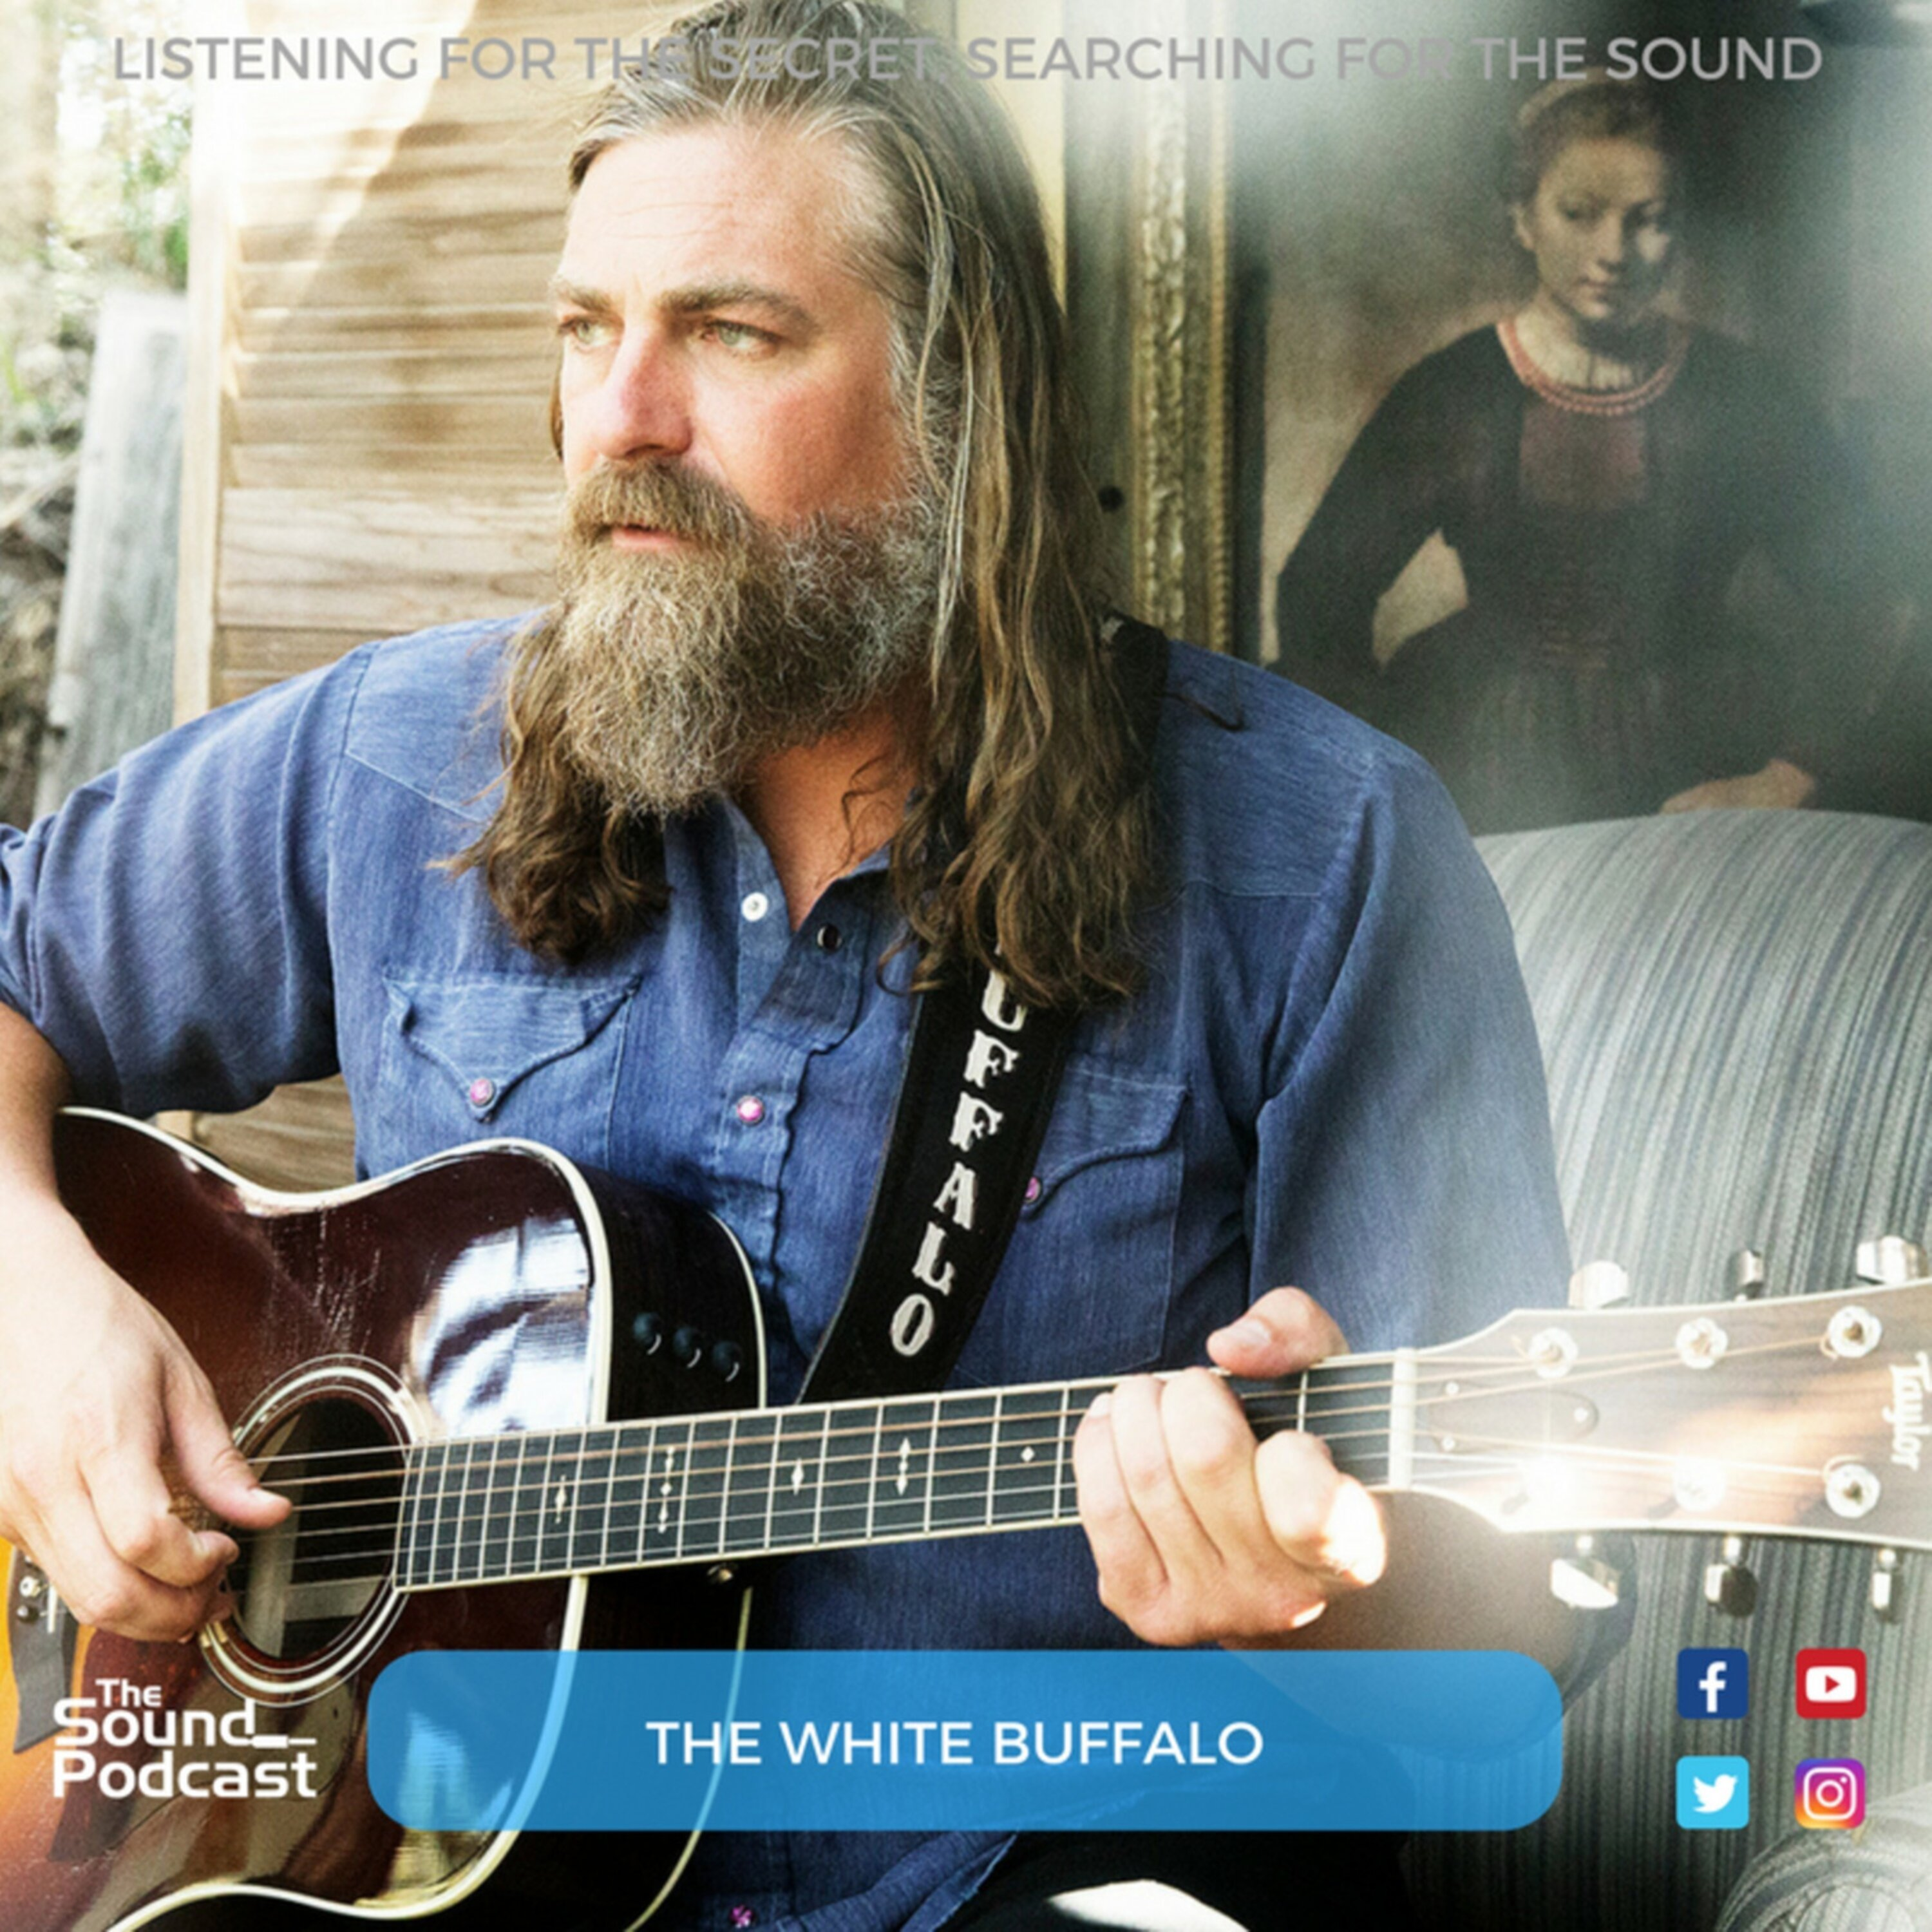 Episode 67: The White Buffalo